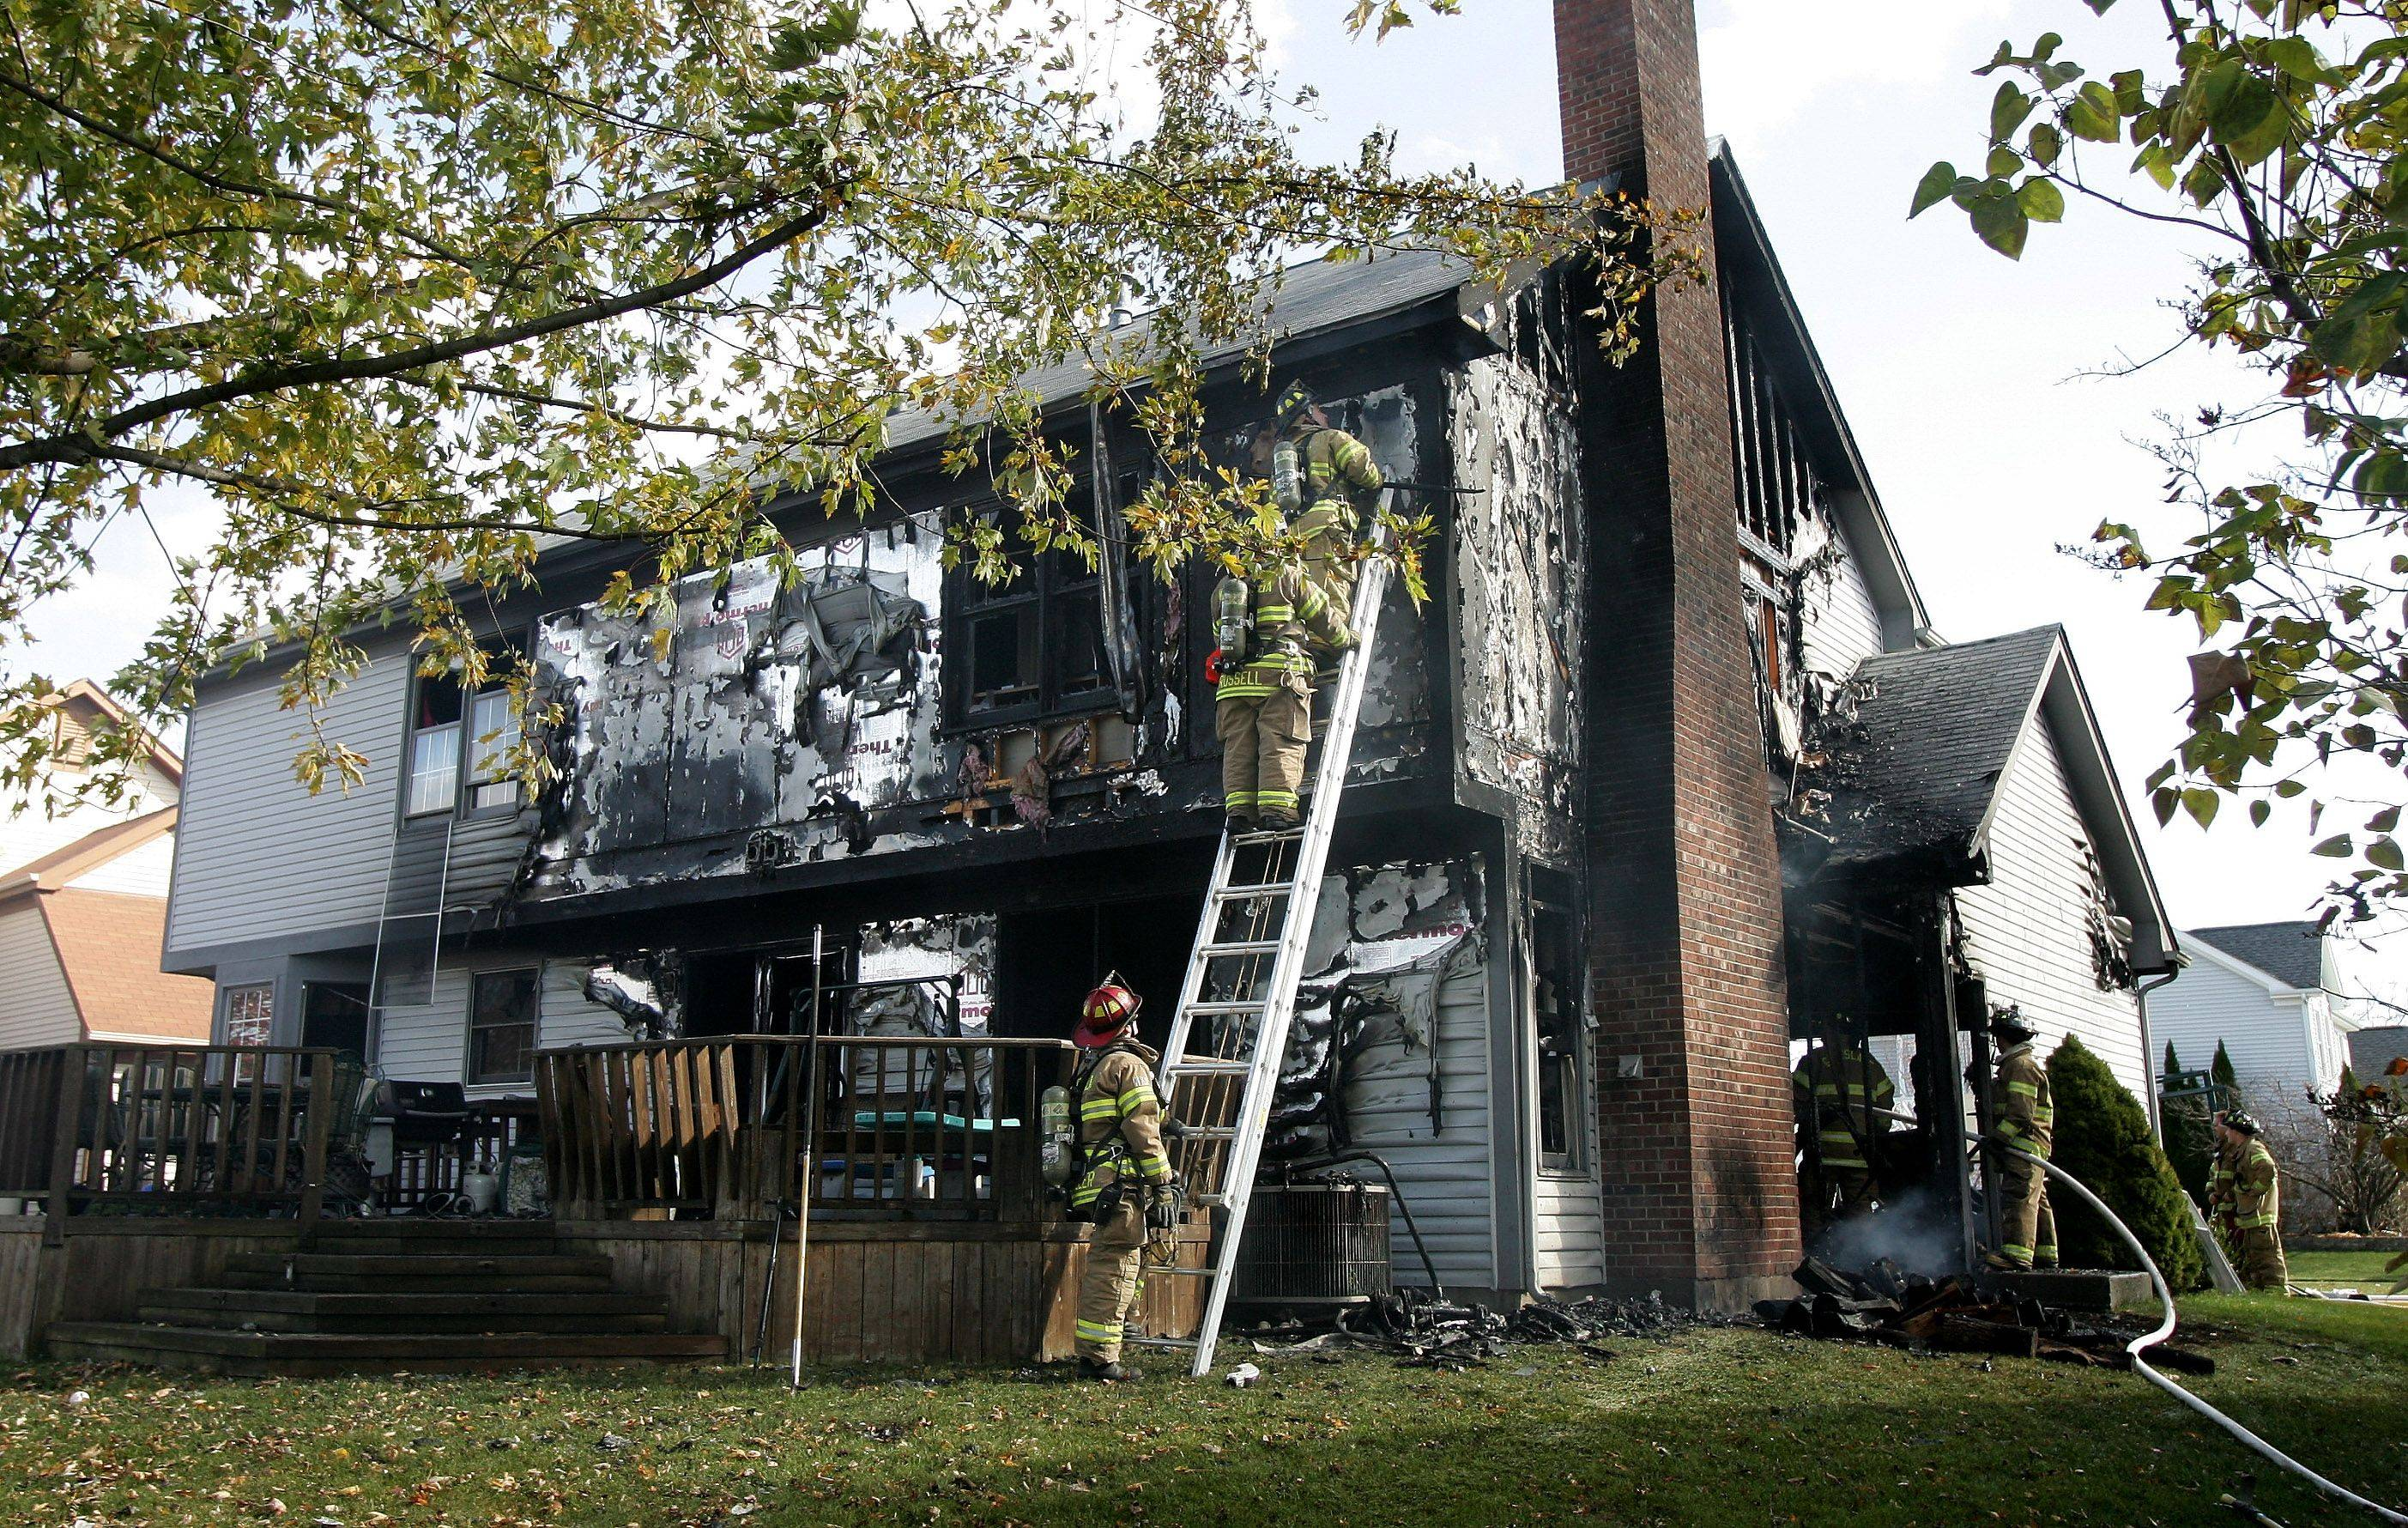 A home was destroyed by a fire Monday in the 300 block of Banbury Lane in Grayslake. Fire departments from as far away as Waukegan and Fox Lake were called to the scene.